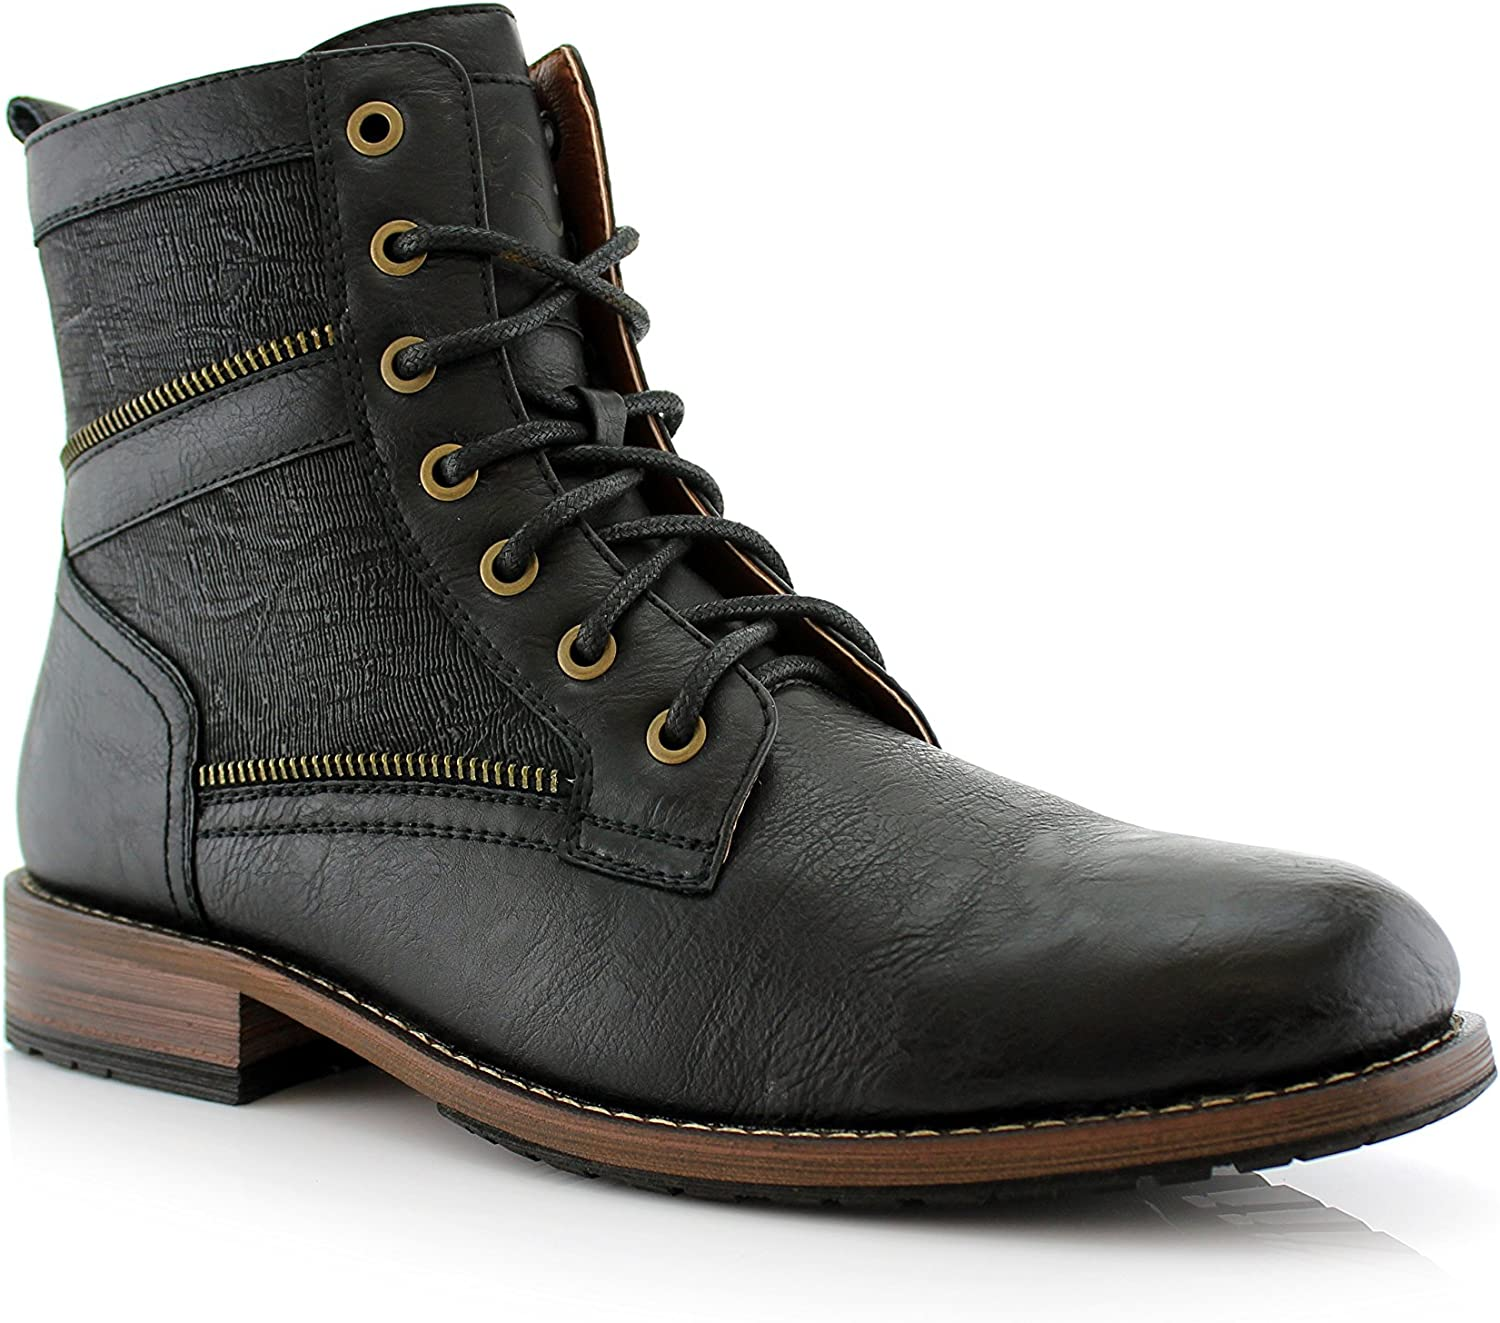 Polar Fox Roy MPX808579 Stylish Men's Boots for Work or Casual Wear